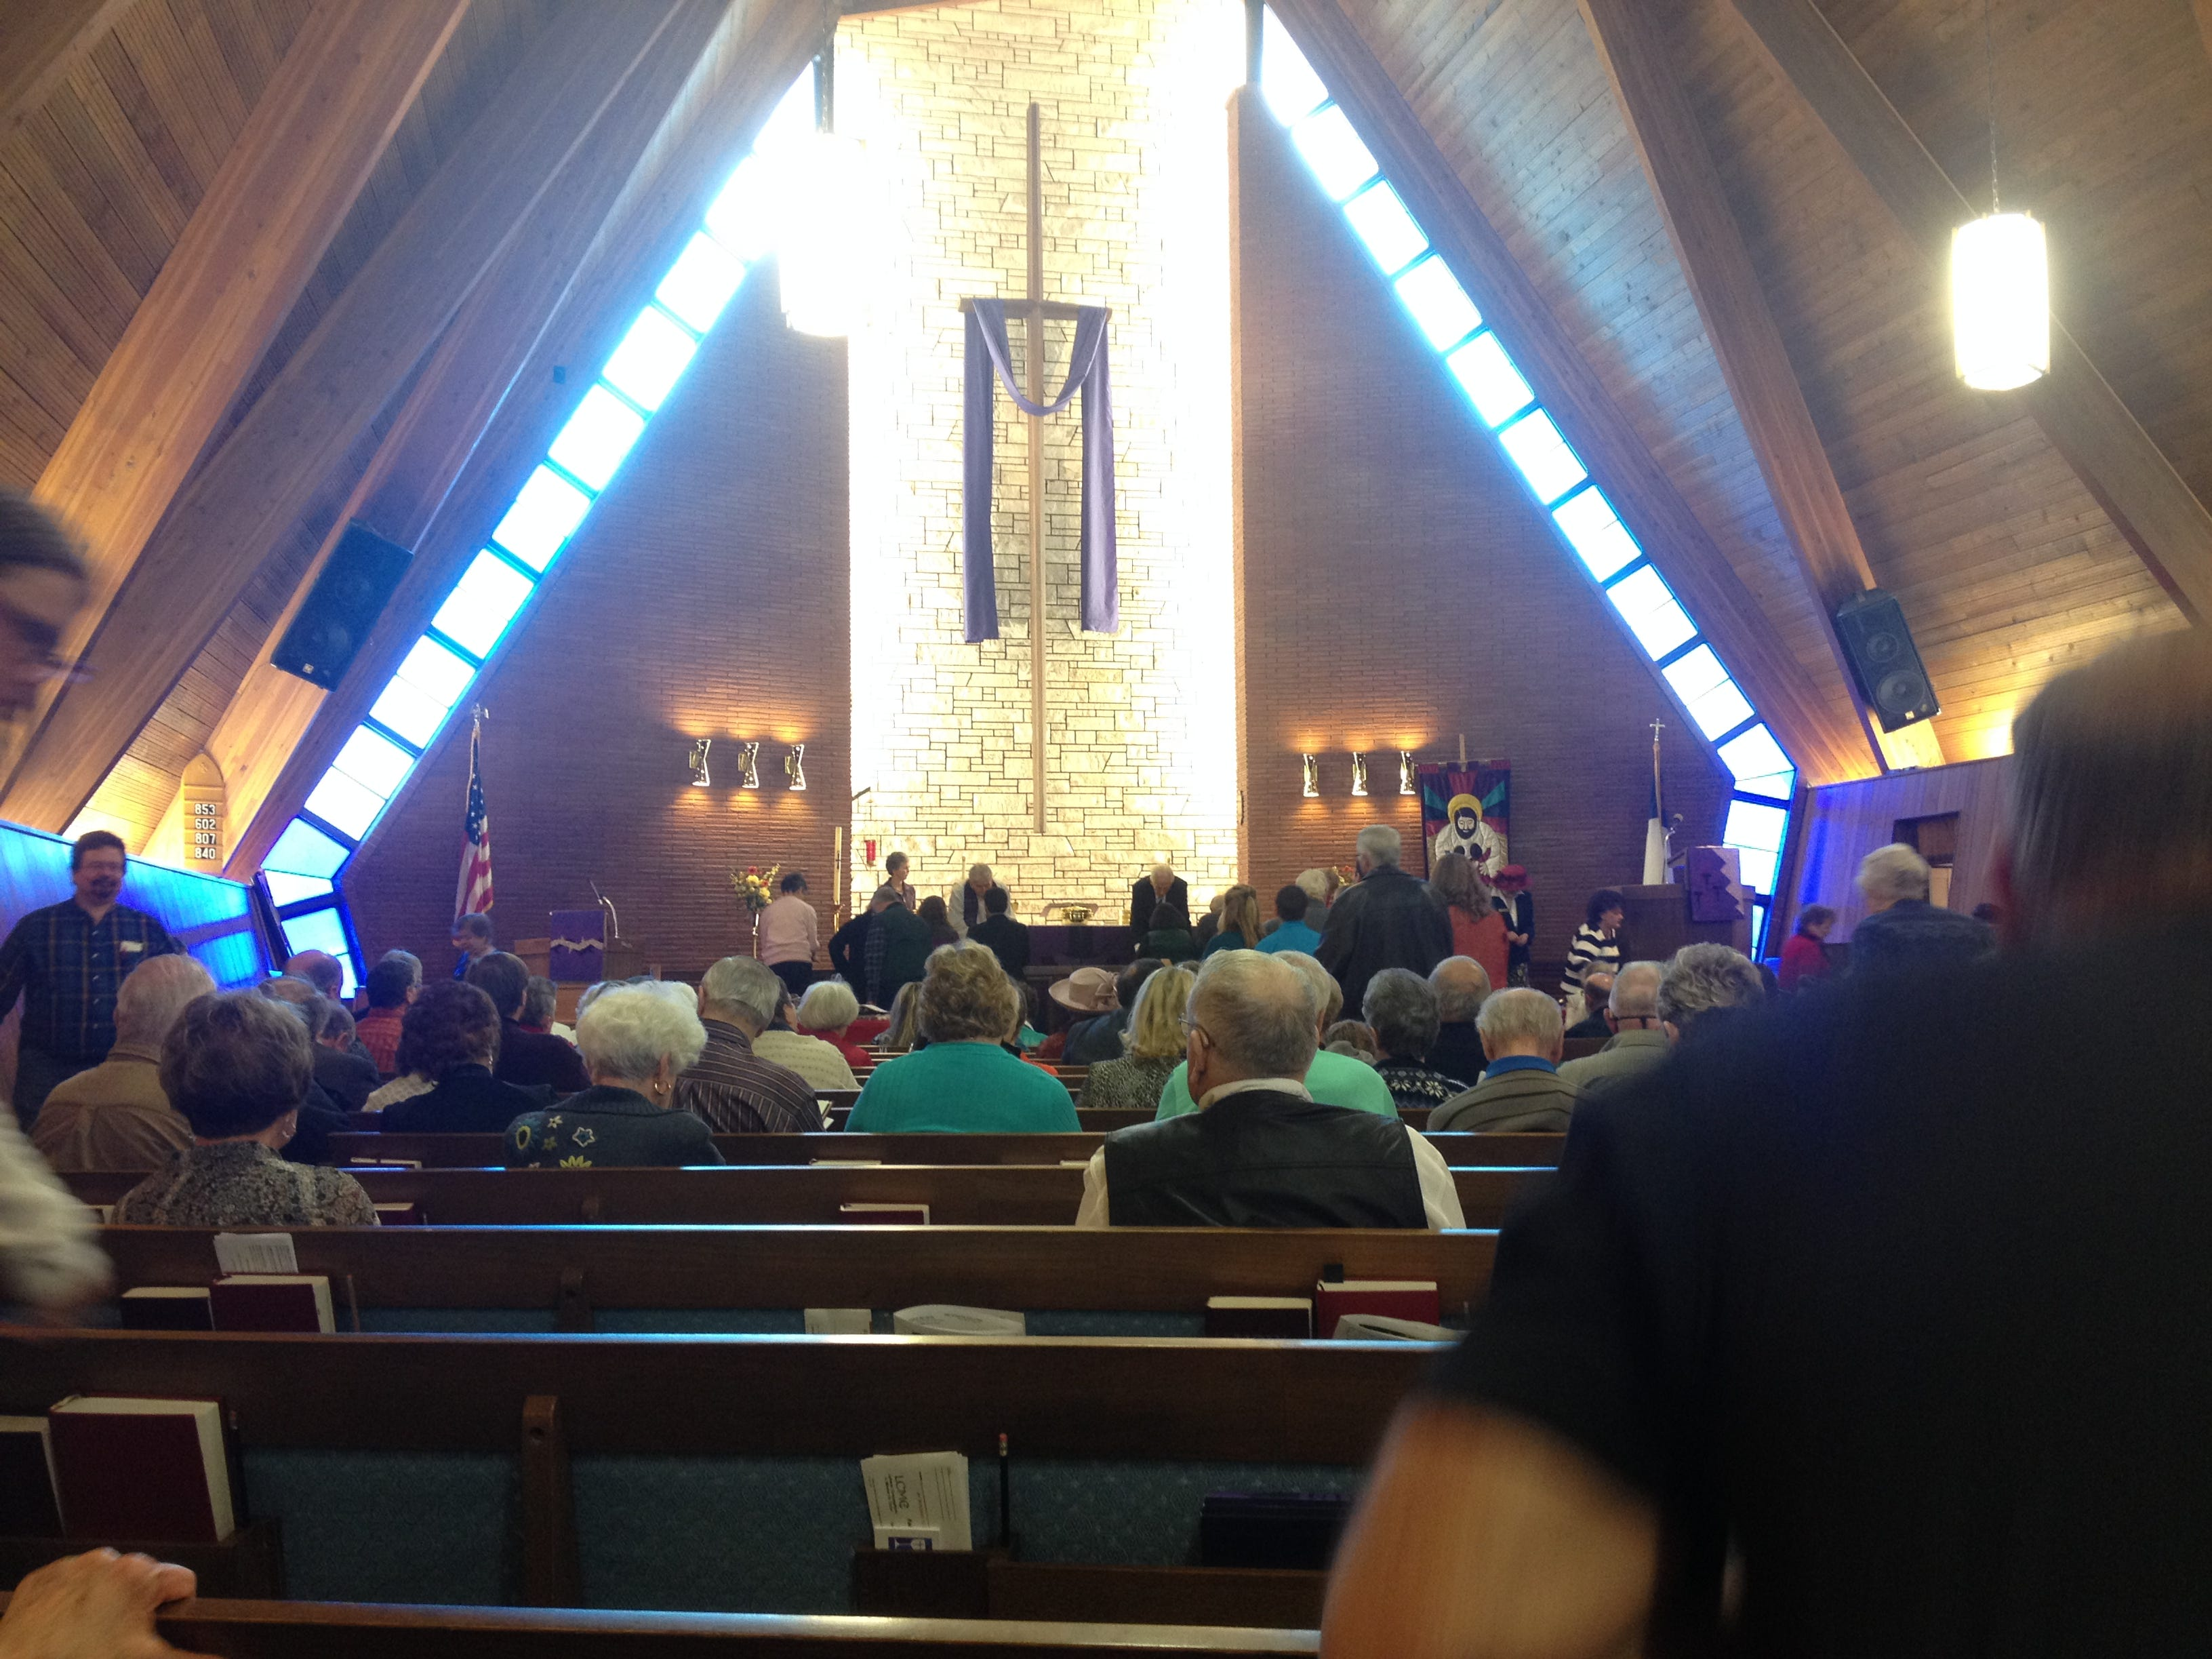 New Hope Lutheran Ministries is one of several Lutheran congregations in Great Falls.